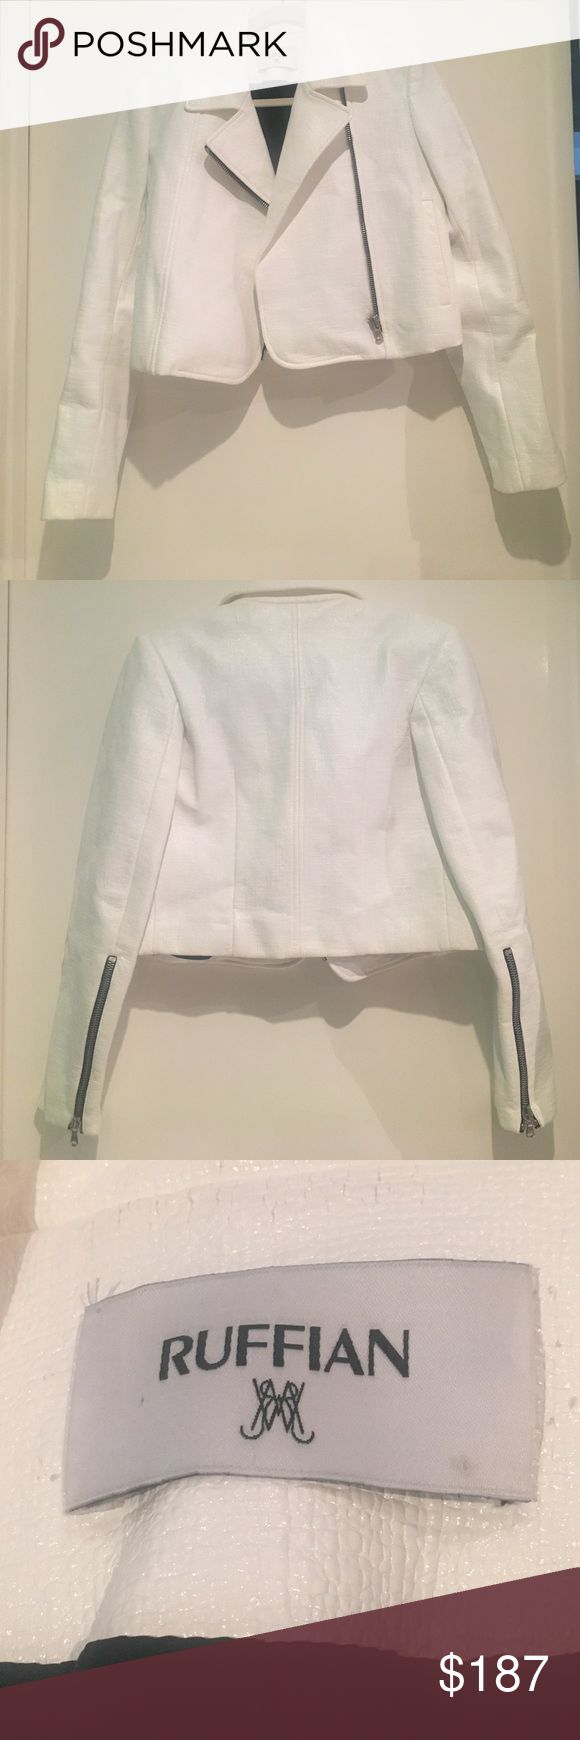 Ruffian White Leather Jacket This leather jacket from Ruffian has never been worn and is in excellent condition! It's a size 4! Great leather jacket! Please, no trades. Offers are welcomed :) Ruffian Jackets & Coats